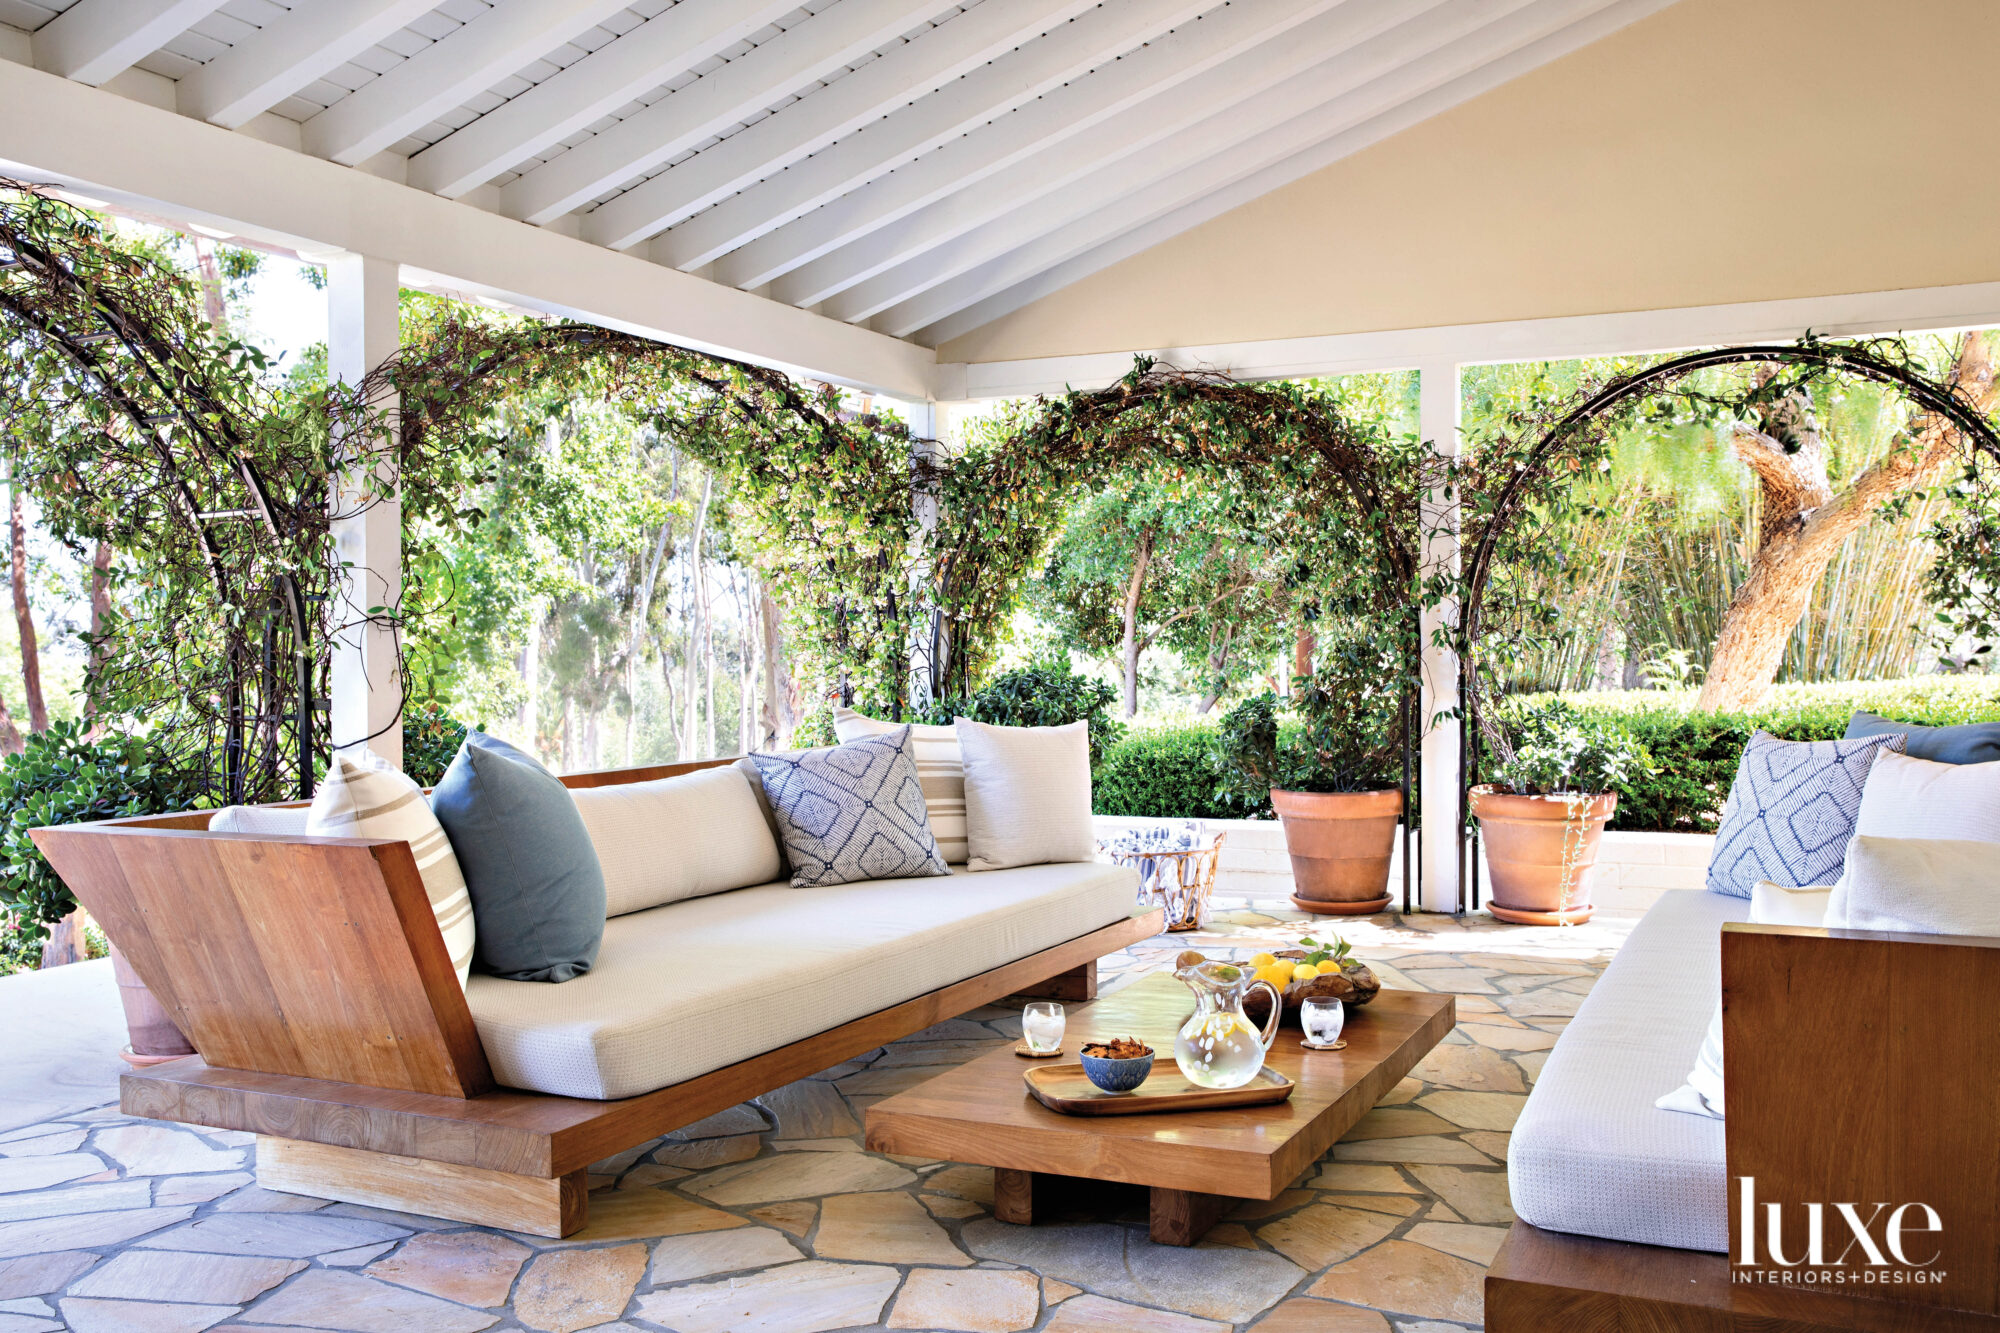 Covered terrace with large couches and coffee table